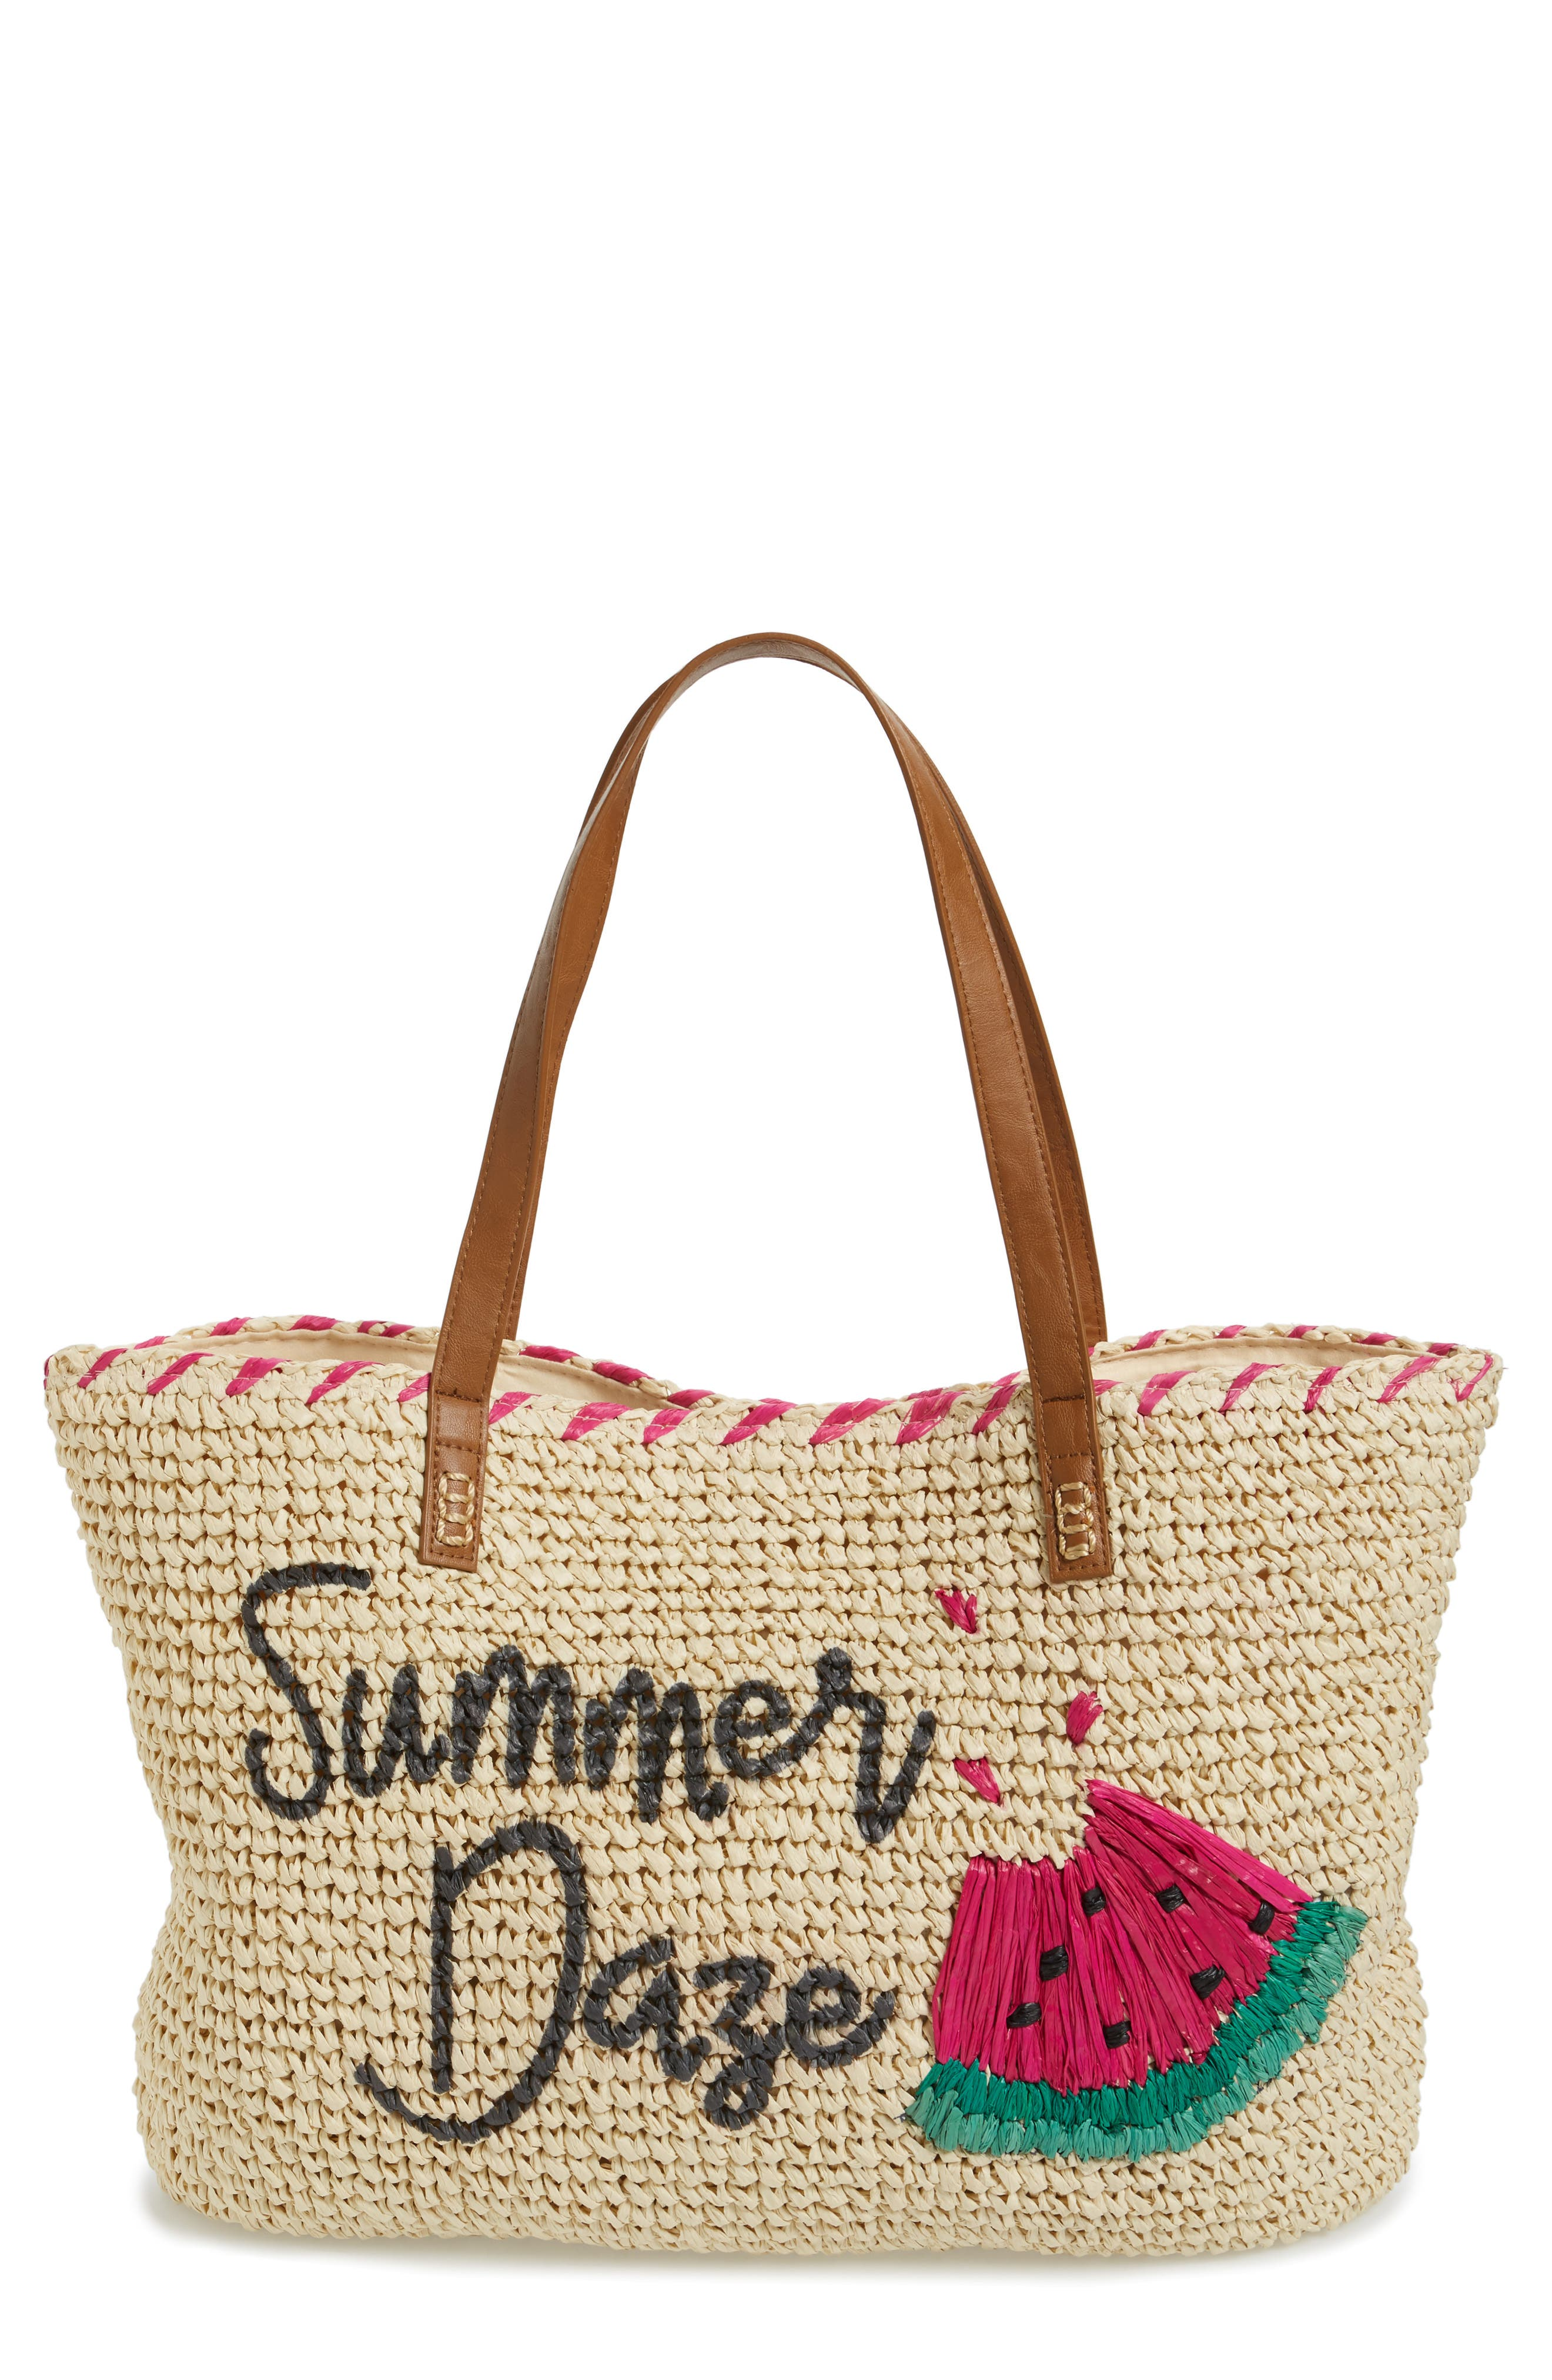 NORDSTROM, Summer Daze Straw Tote, Main thumbnail 1, color, 235